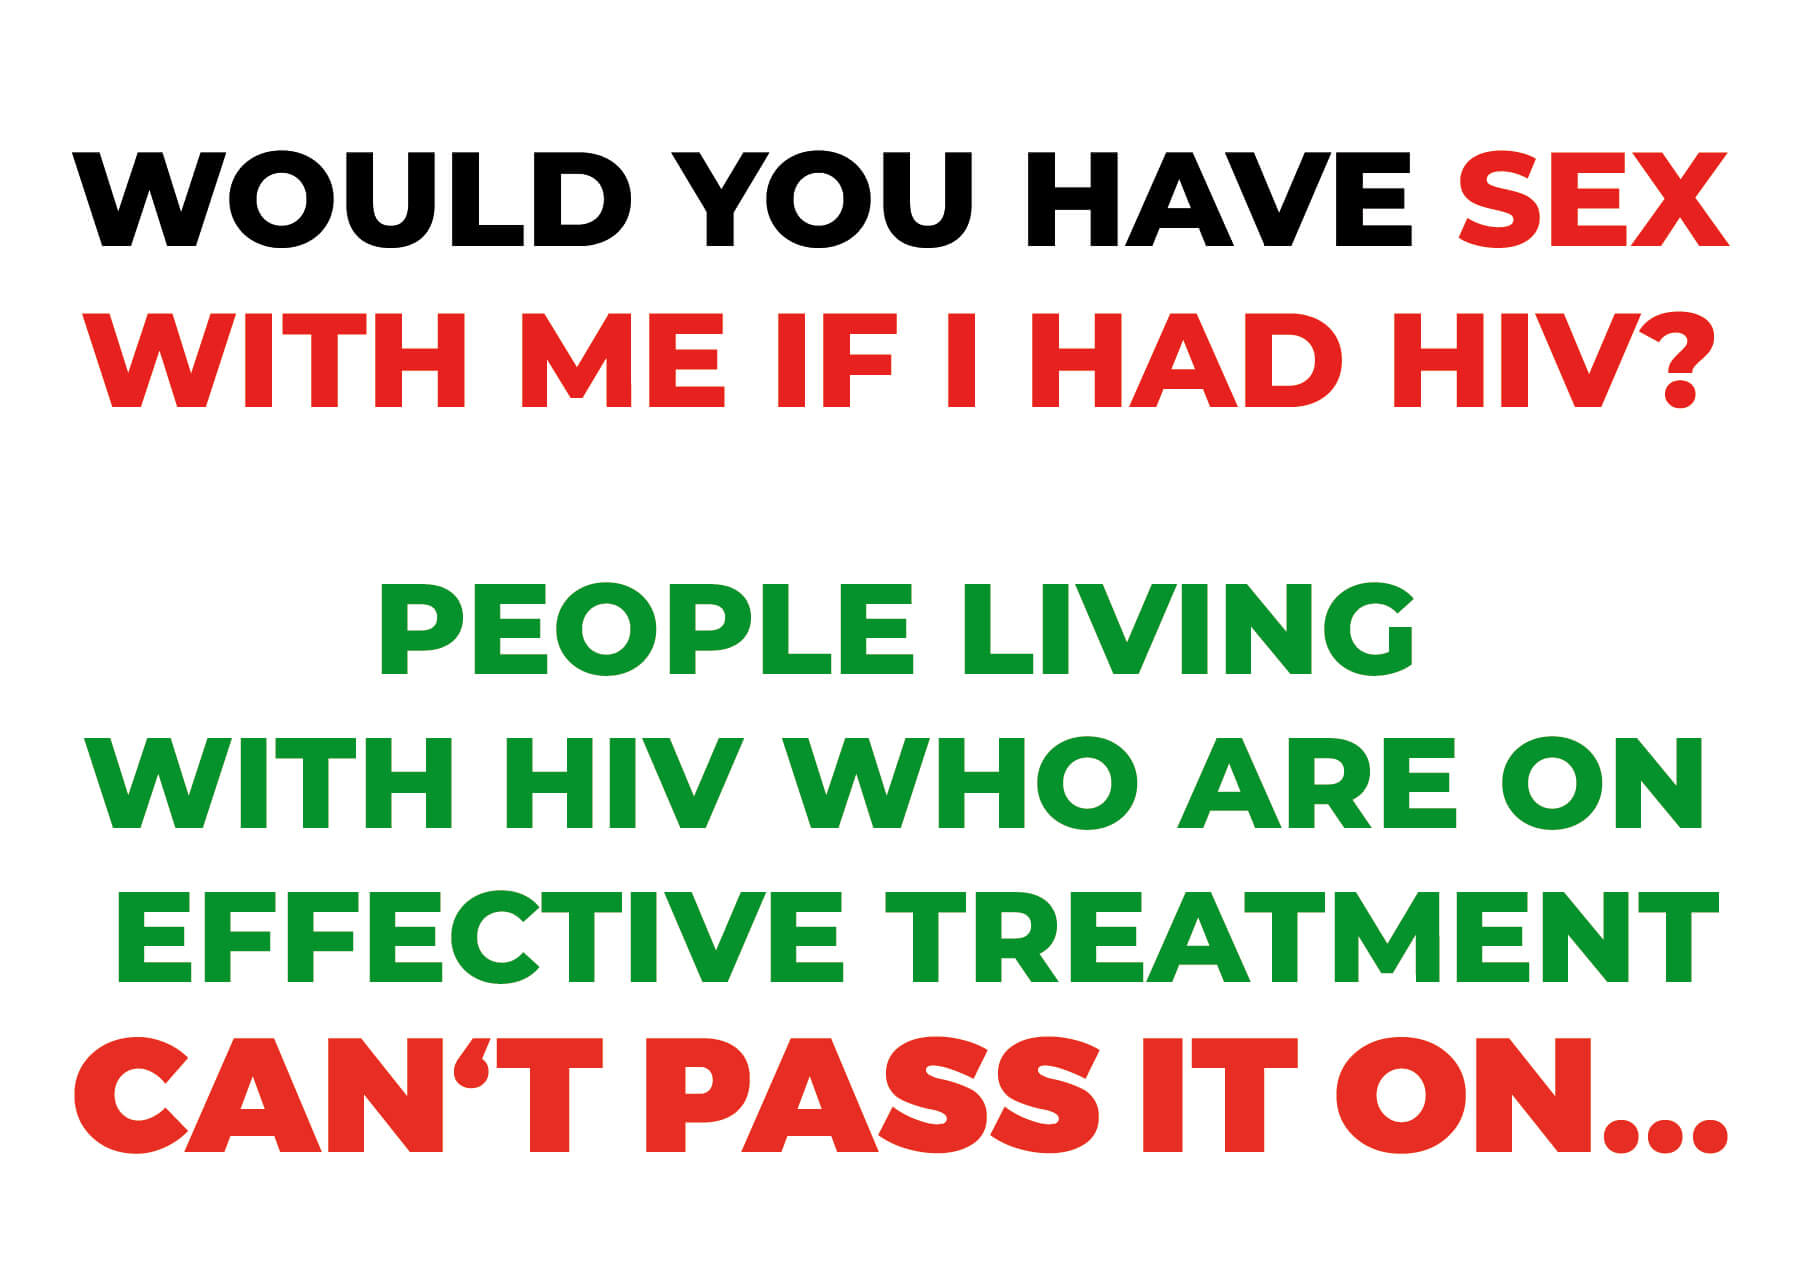 Would you have sex with me if i had HIV? People living with HIV who are on effective treatment can't pass it on...